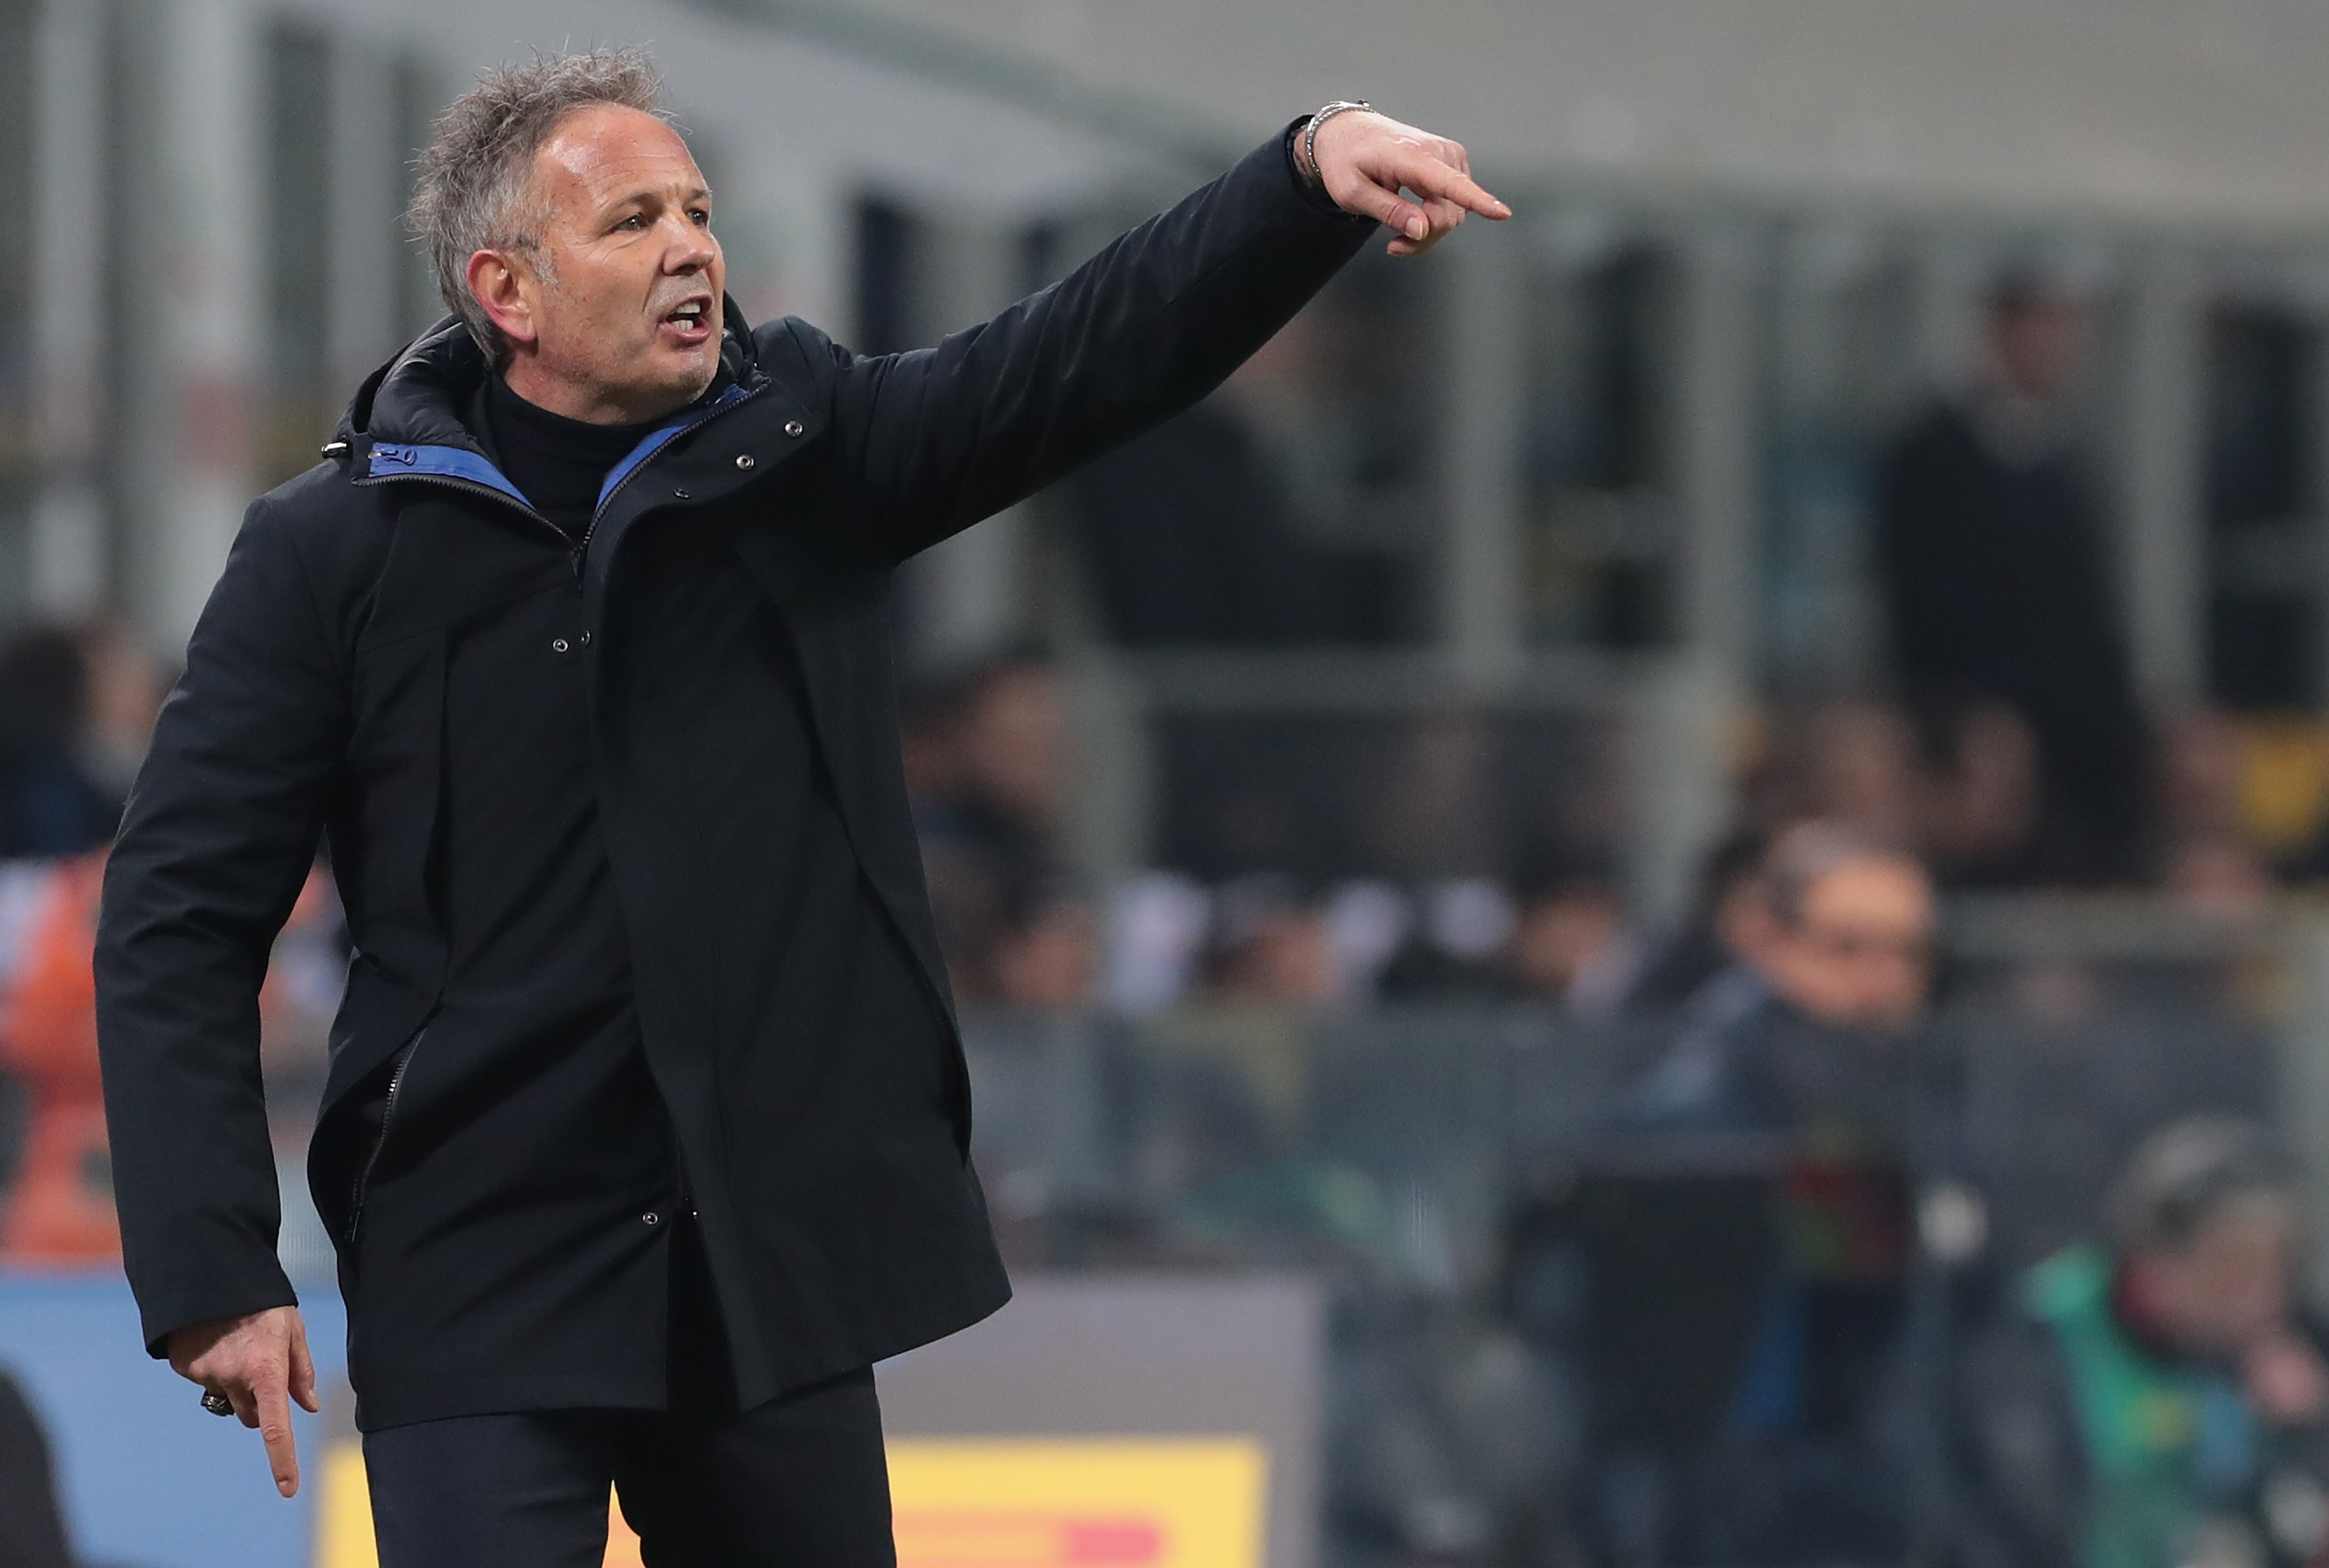 Sinisa Mihajlovic will be looking for a win against his former employers (Photo by Emilio Andreoli/Getty Images)